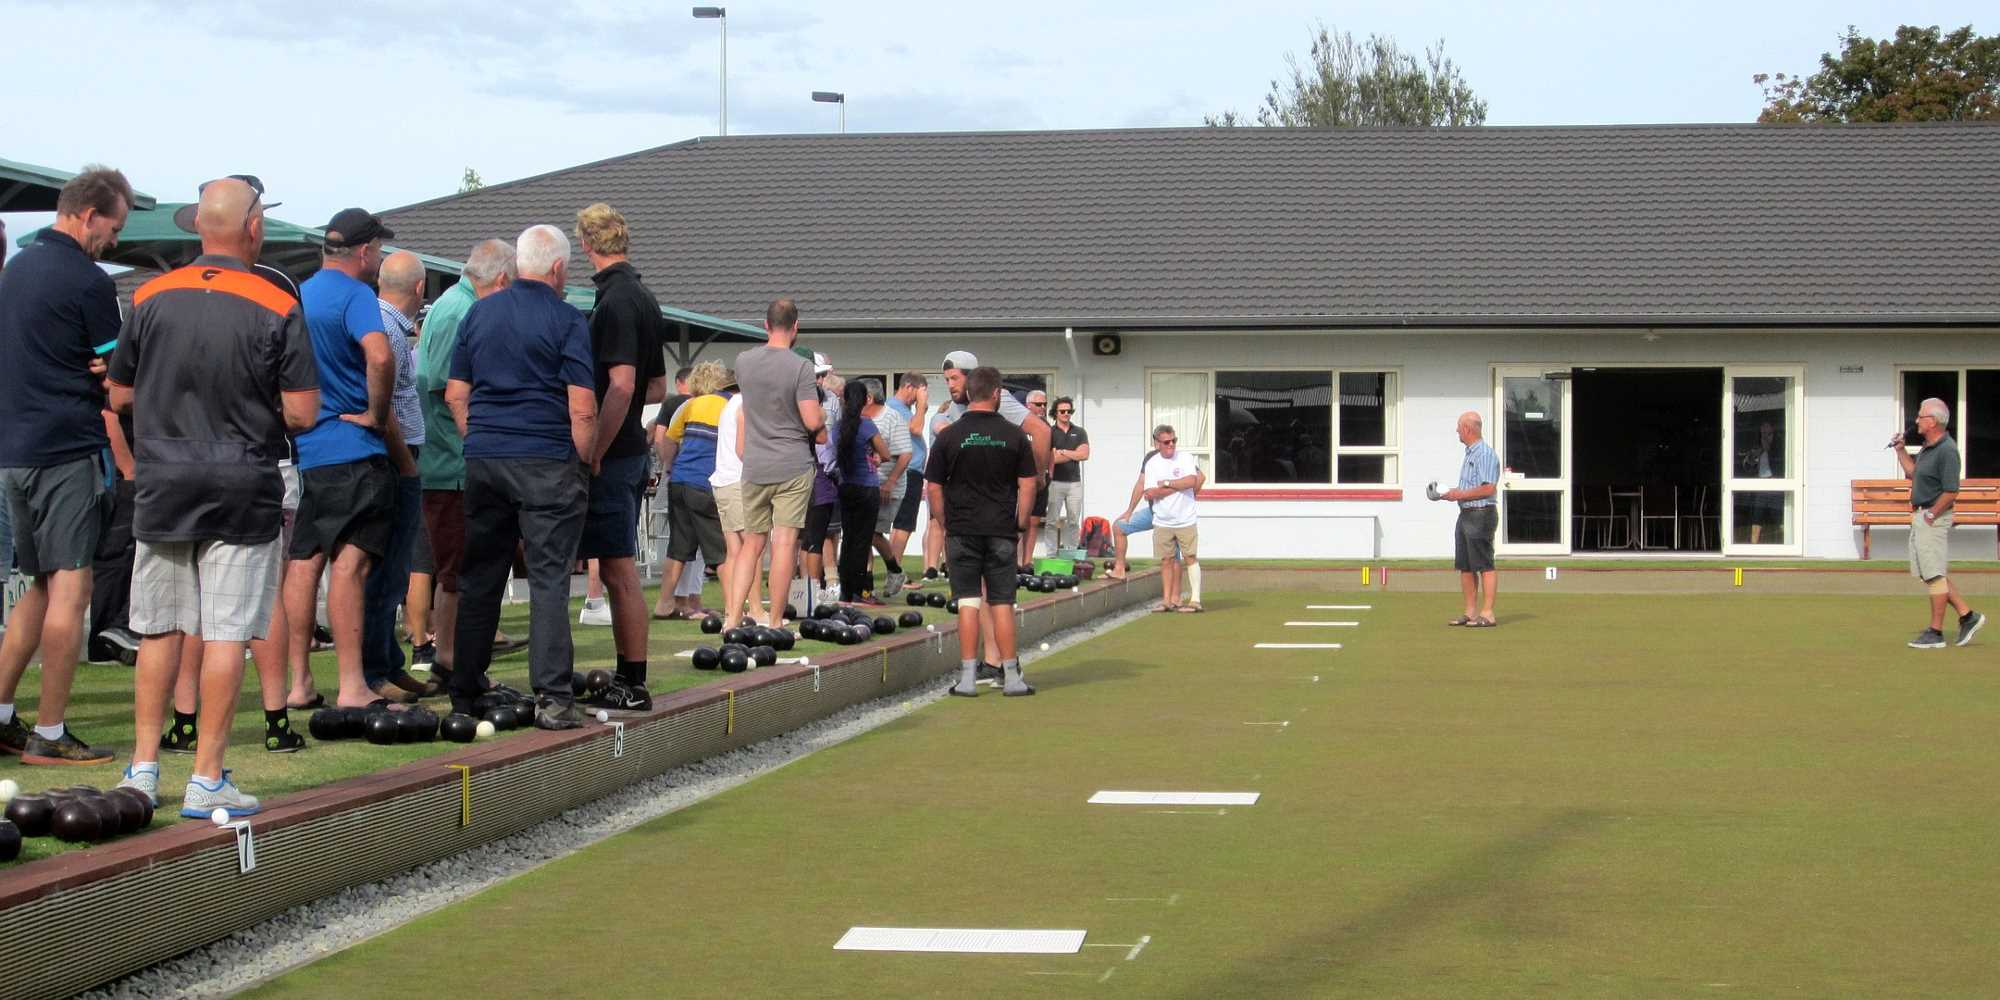 Community Bowls - Brian & Bruce welcome 120 bowlers - 21 Jan